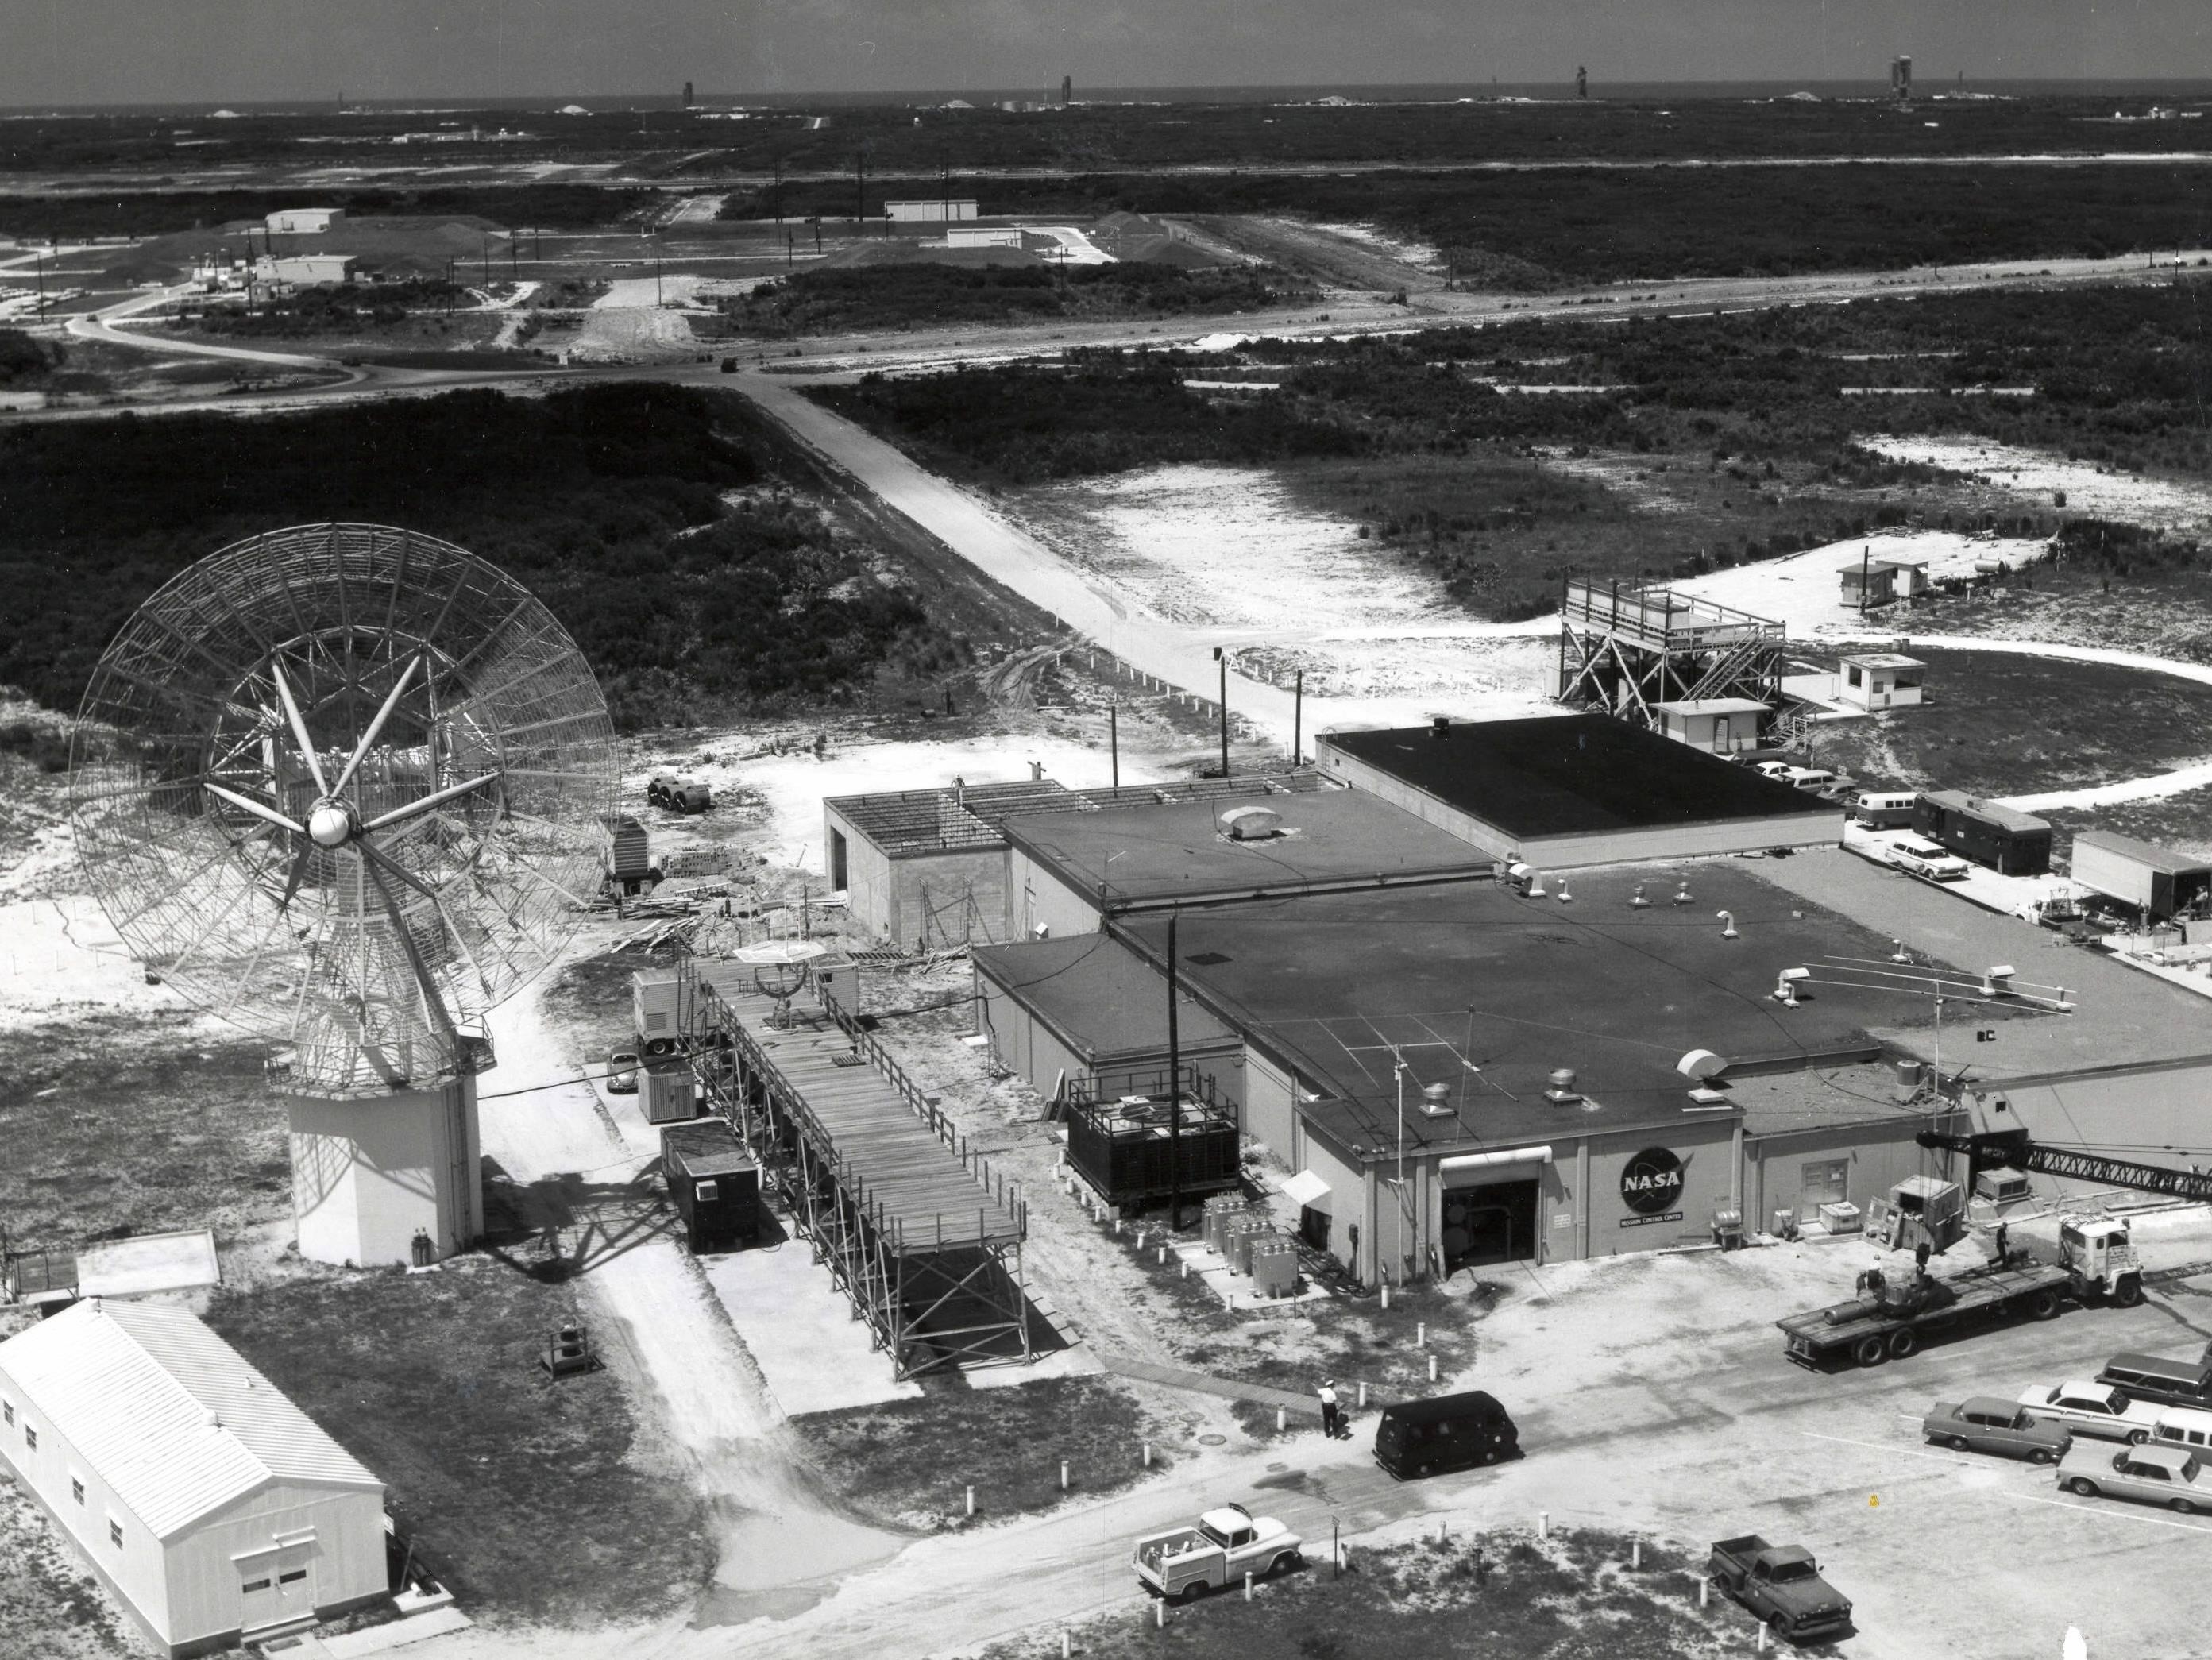 Mercury Control Center at Cape Canaveral with Missile Row in the background. Between 1962 and 1963, the facility was modified to handle the additional complexities of the Gemini Program. In 1962, Pan American World Airways Inc. was contracted to design an addition to the facility, which wrapped around the east, north, and most of the west and south sides. This addition included areas for flight control briefing, data analysis, and a large space for a new Gemini spacecraft trainer. Photo taken on June 4, 1963.